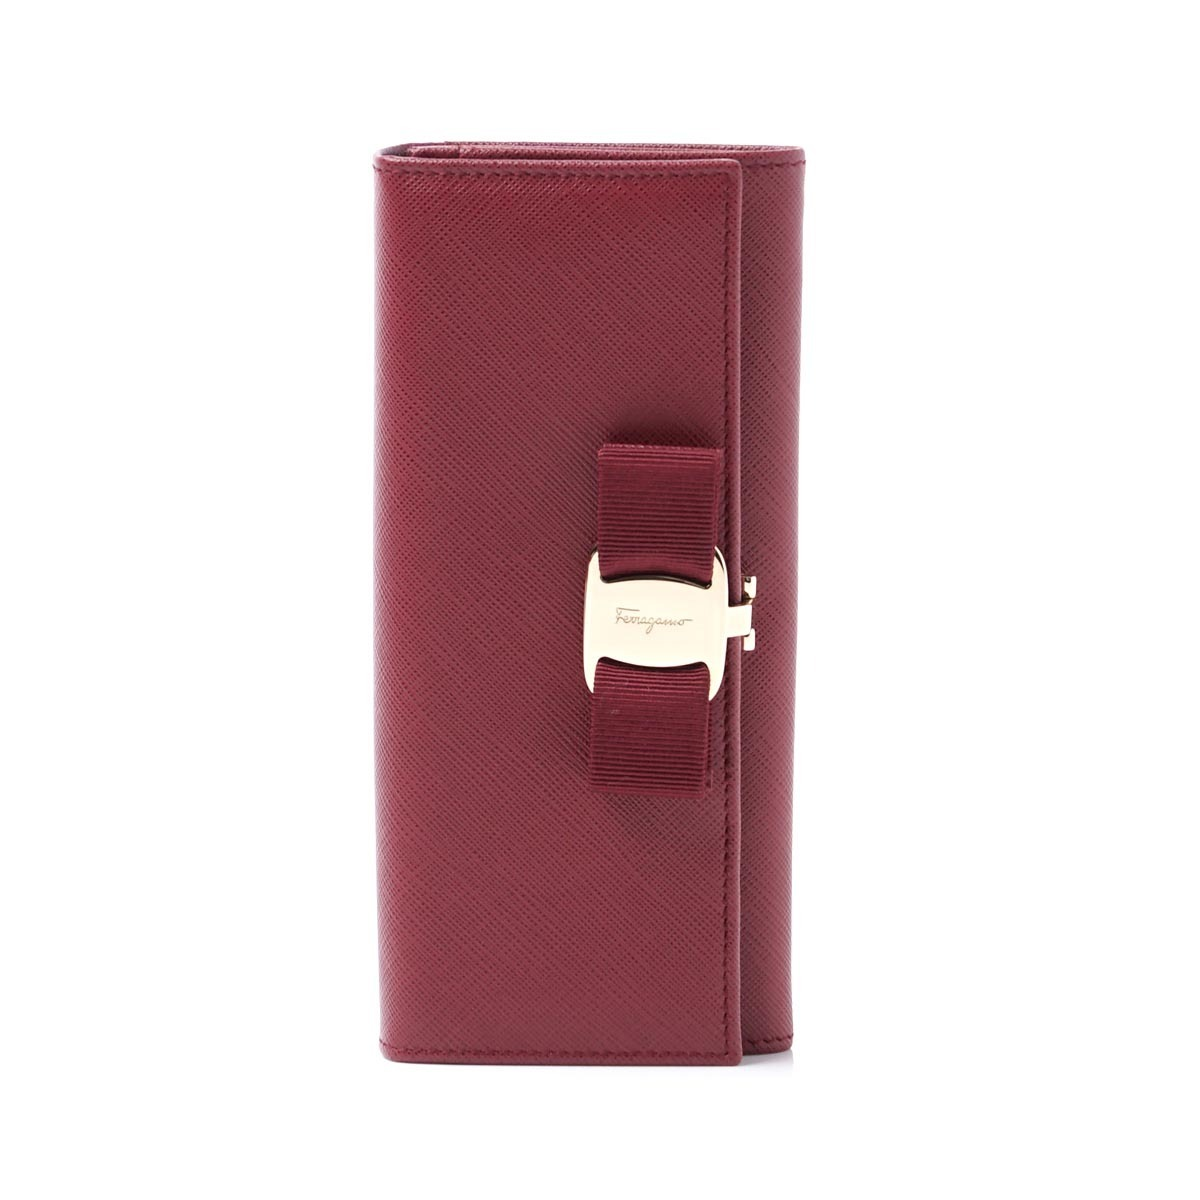 Salvatore Ferragamo Men's Accessories Salvatore Ferragamo was a distinguished Designer Trends · Free Shipping · Free Returns · New Arrivals in Sale,+ followers on Twitter.